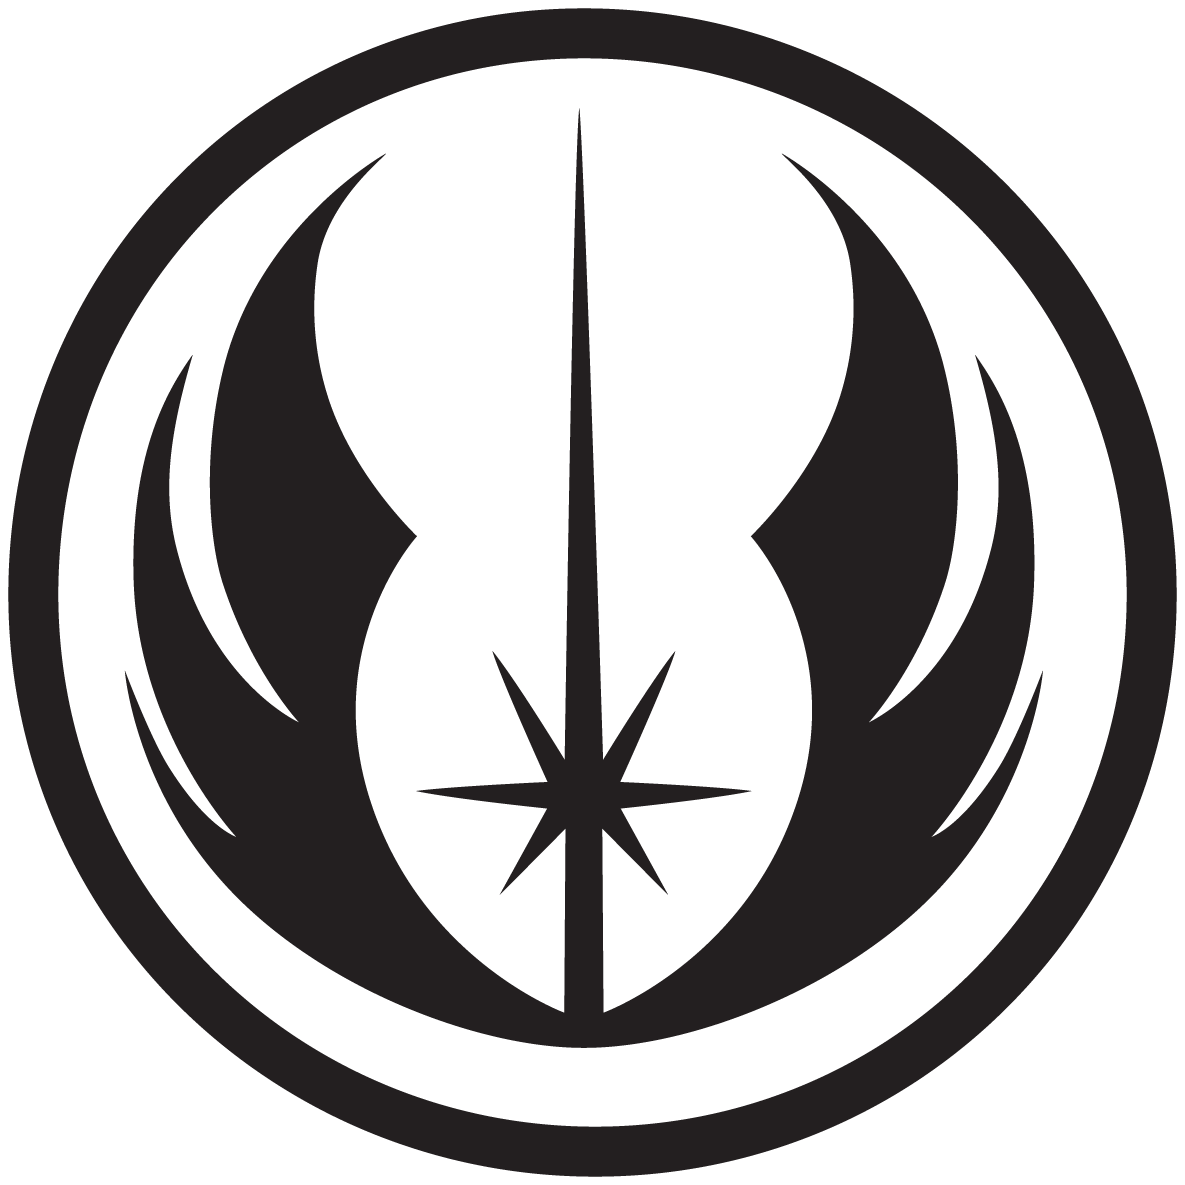 Star wars logos and symbols png transparent. Image jedi canon extended